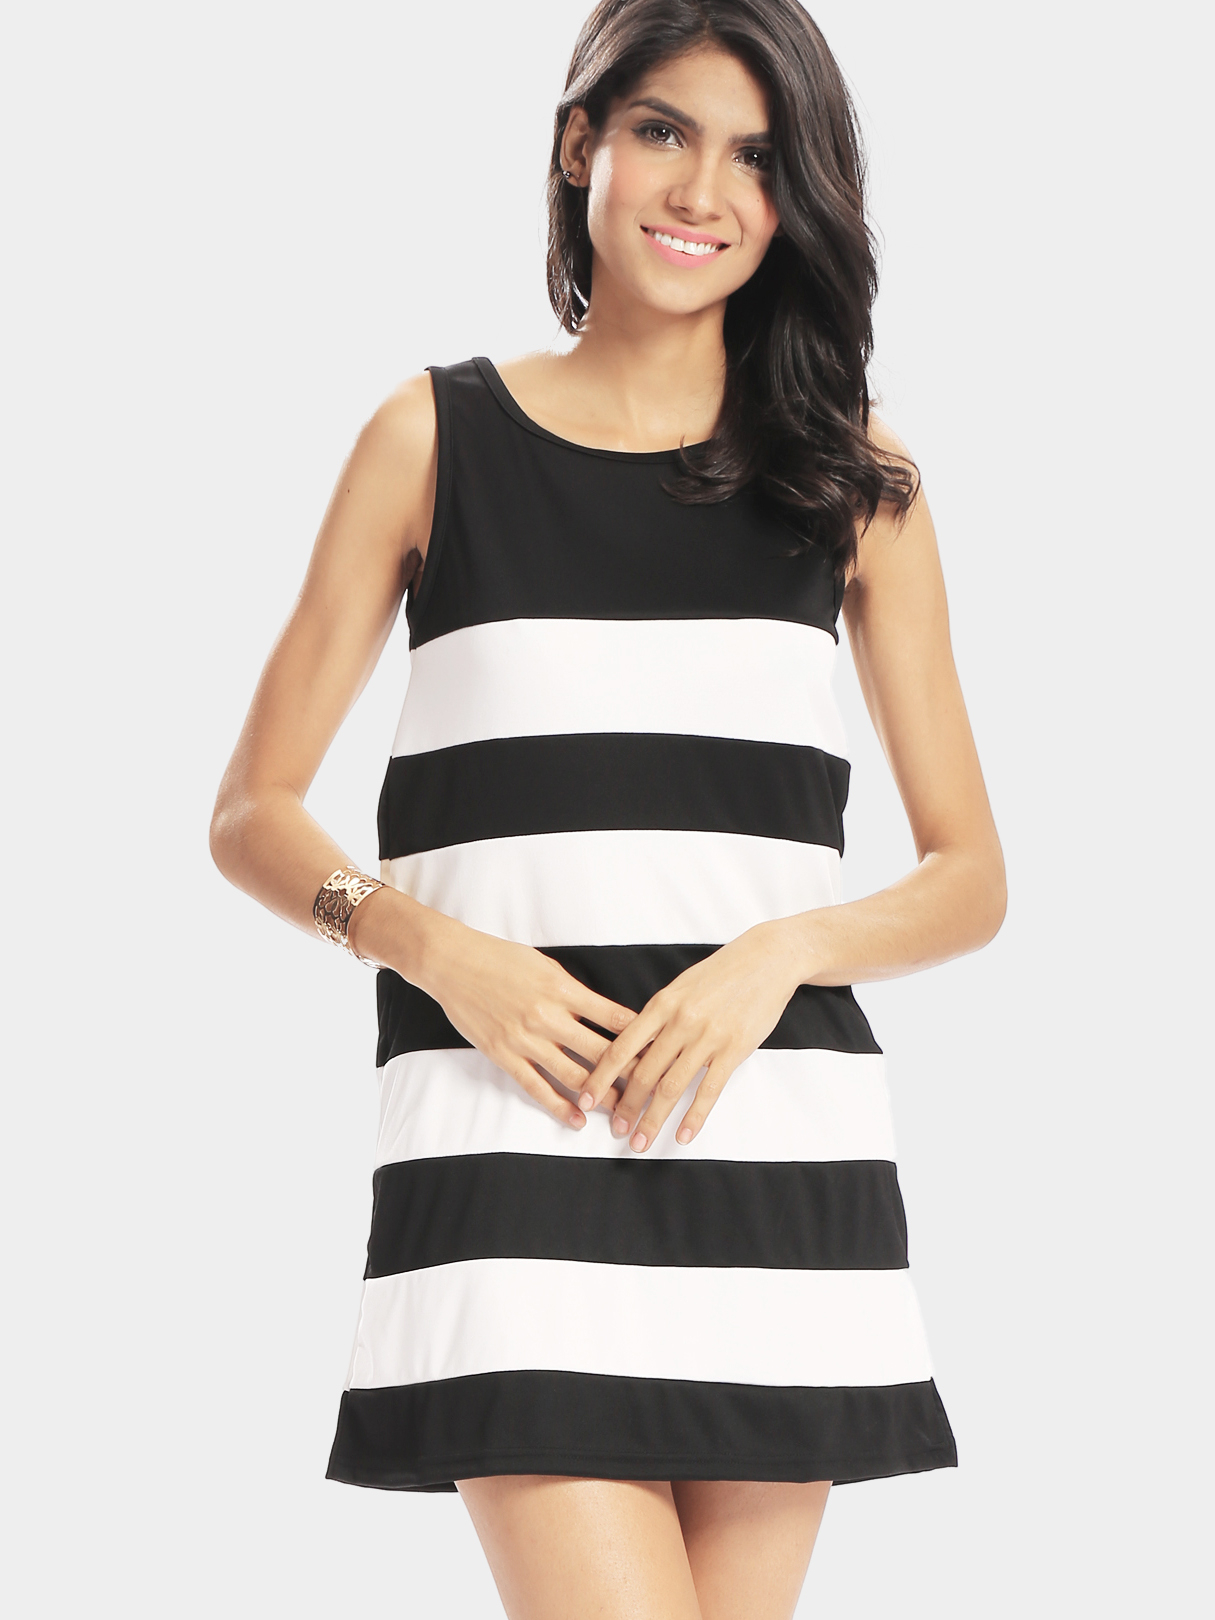 Loose Sleeveless Black and White Stripe Pattern Dress